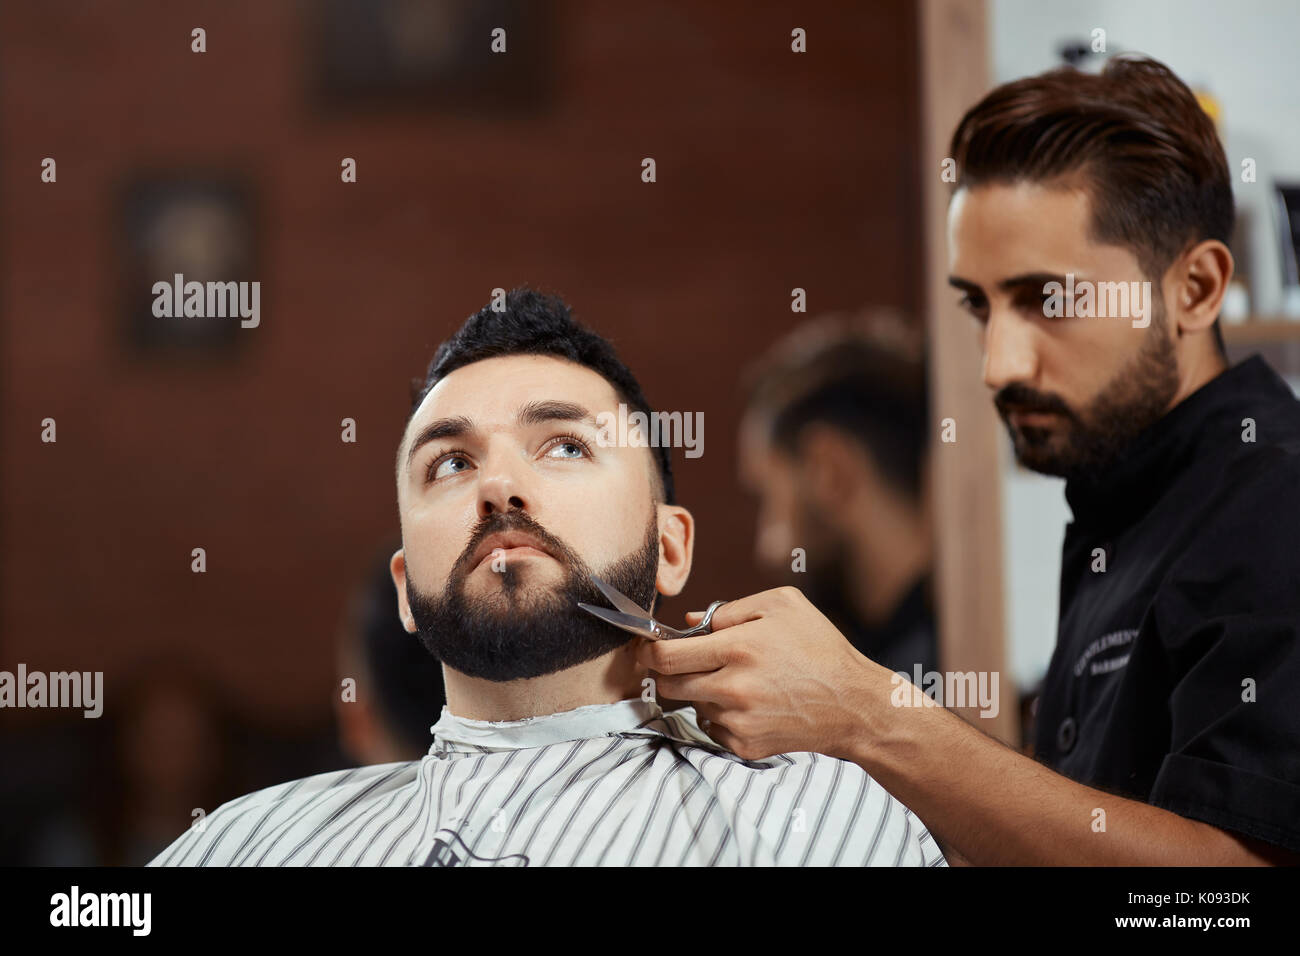 Barber cutting beard with scissors - Stock Image